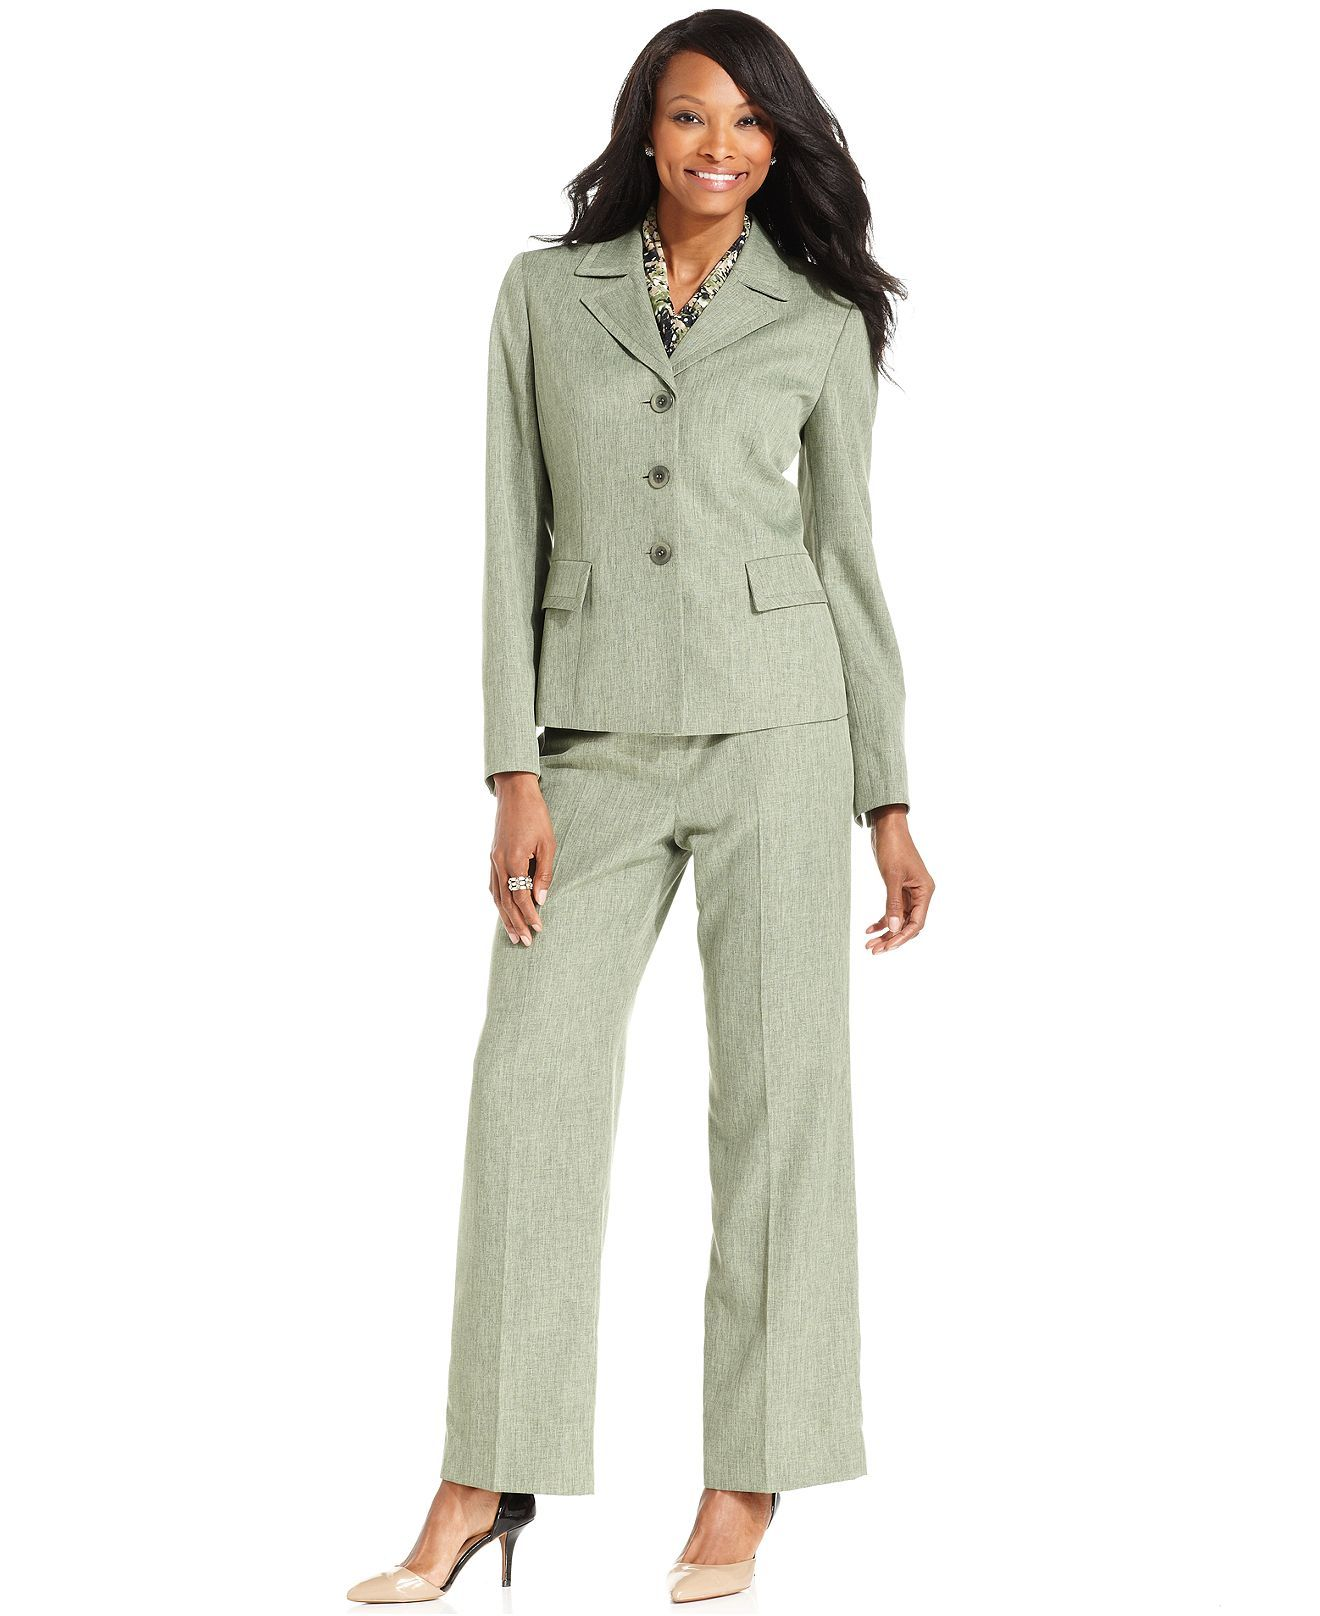 Le Suit Pantsuit Three Button Blazer Scarf Pants Suits Suit